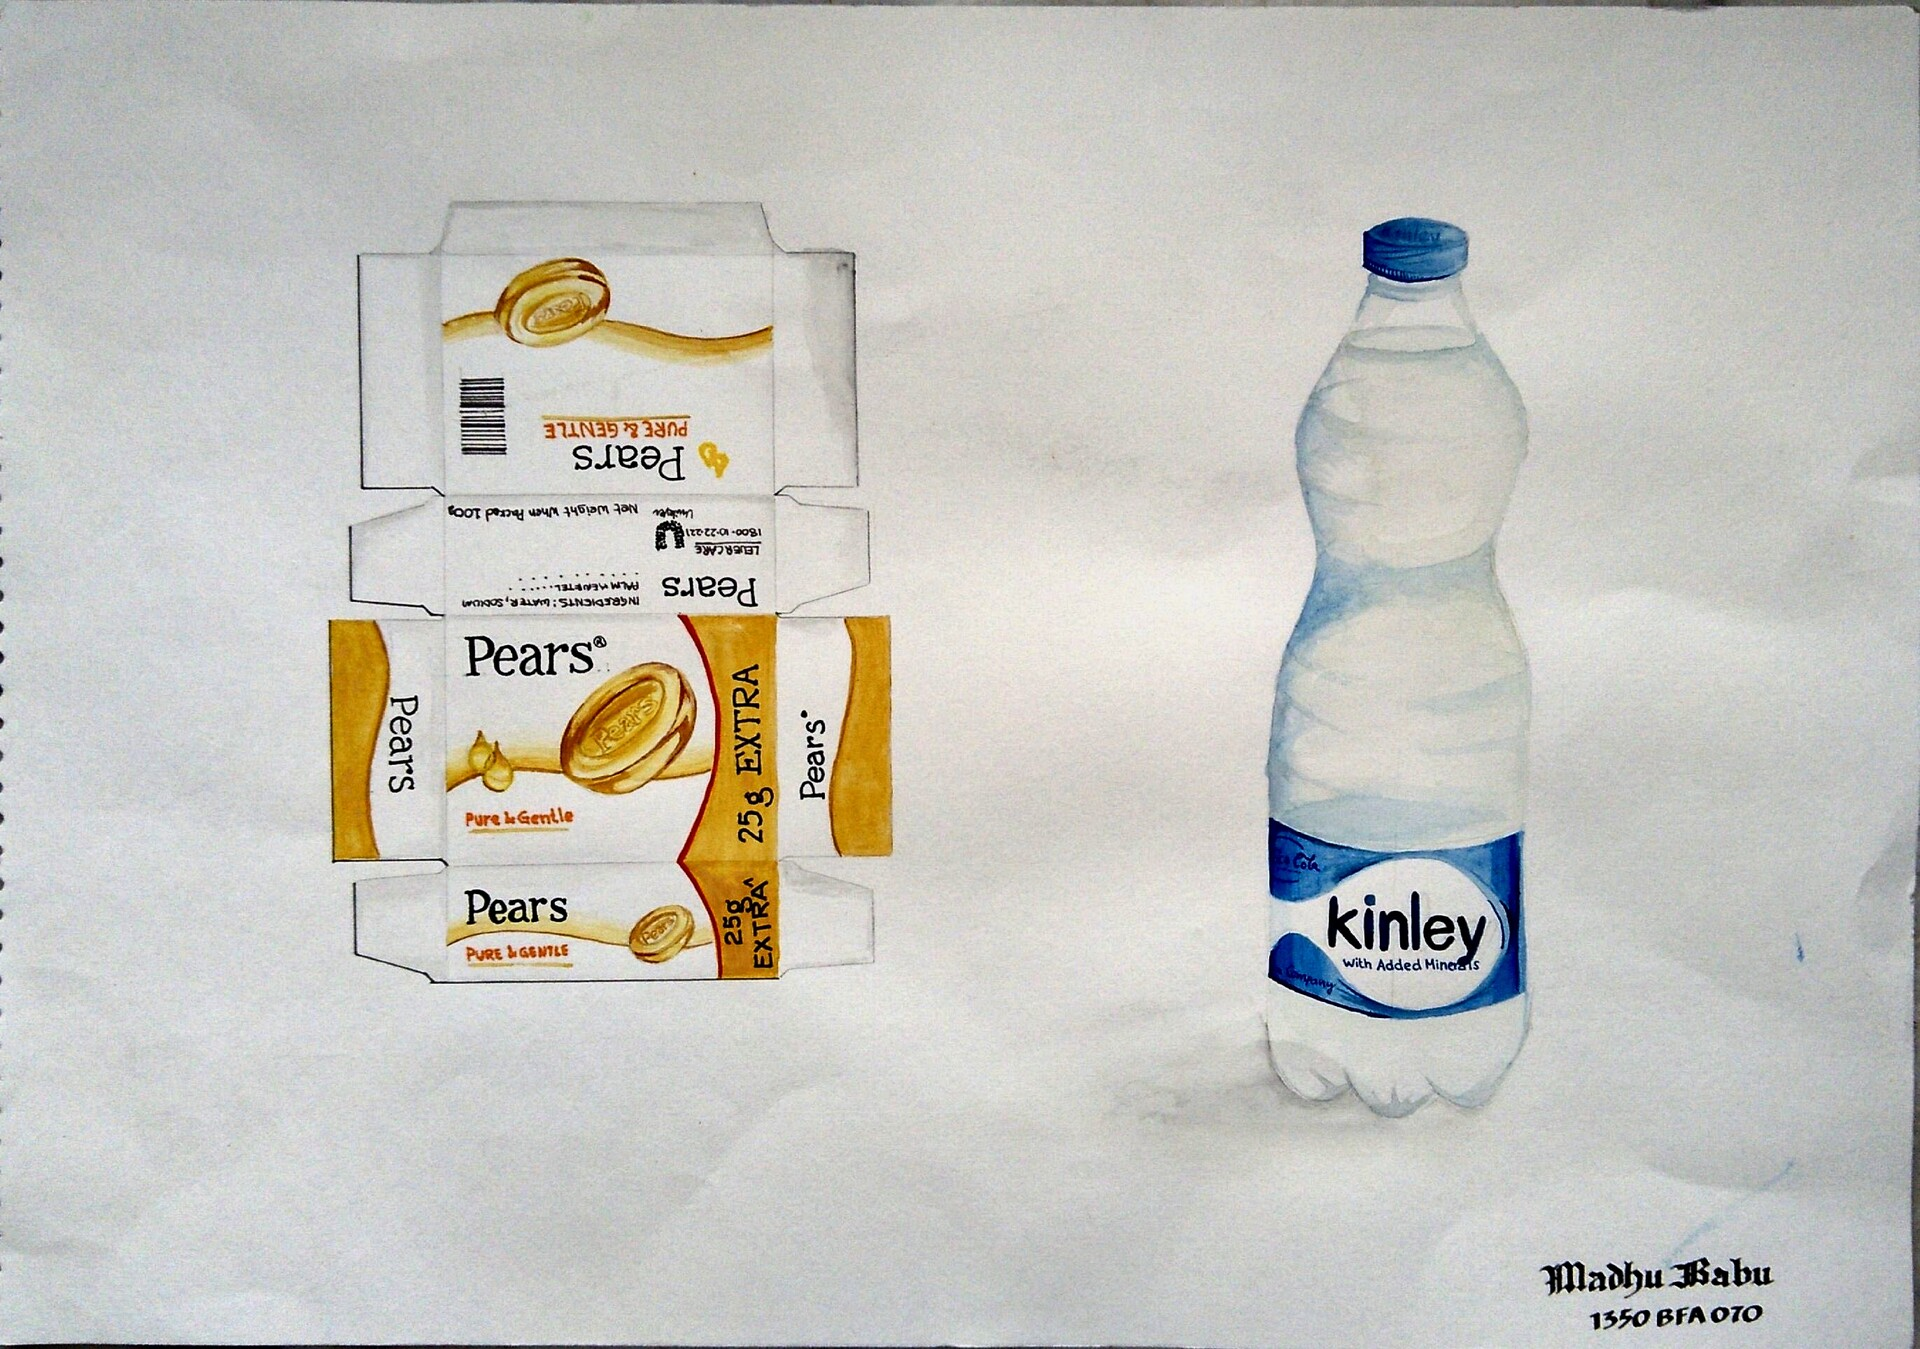 Soap Packaging and Water Bottle - Poster Colors on paper